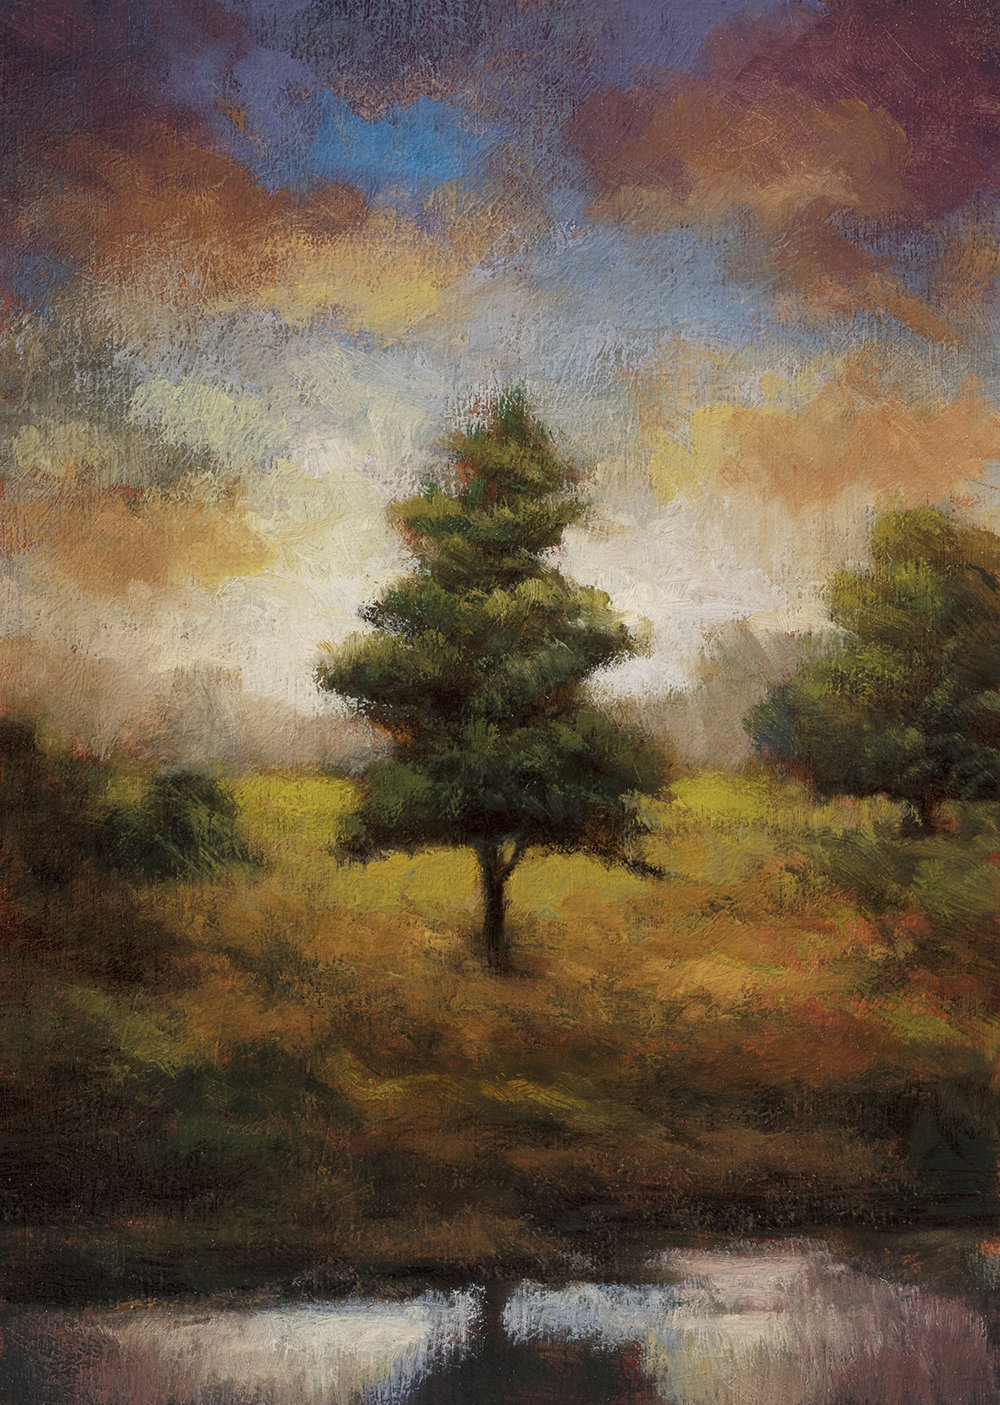 Long Shadows by M Francis McCarthy - 5x7 Oil on Wood Panel